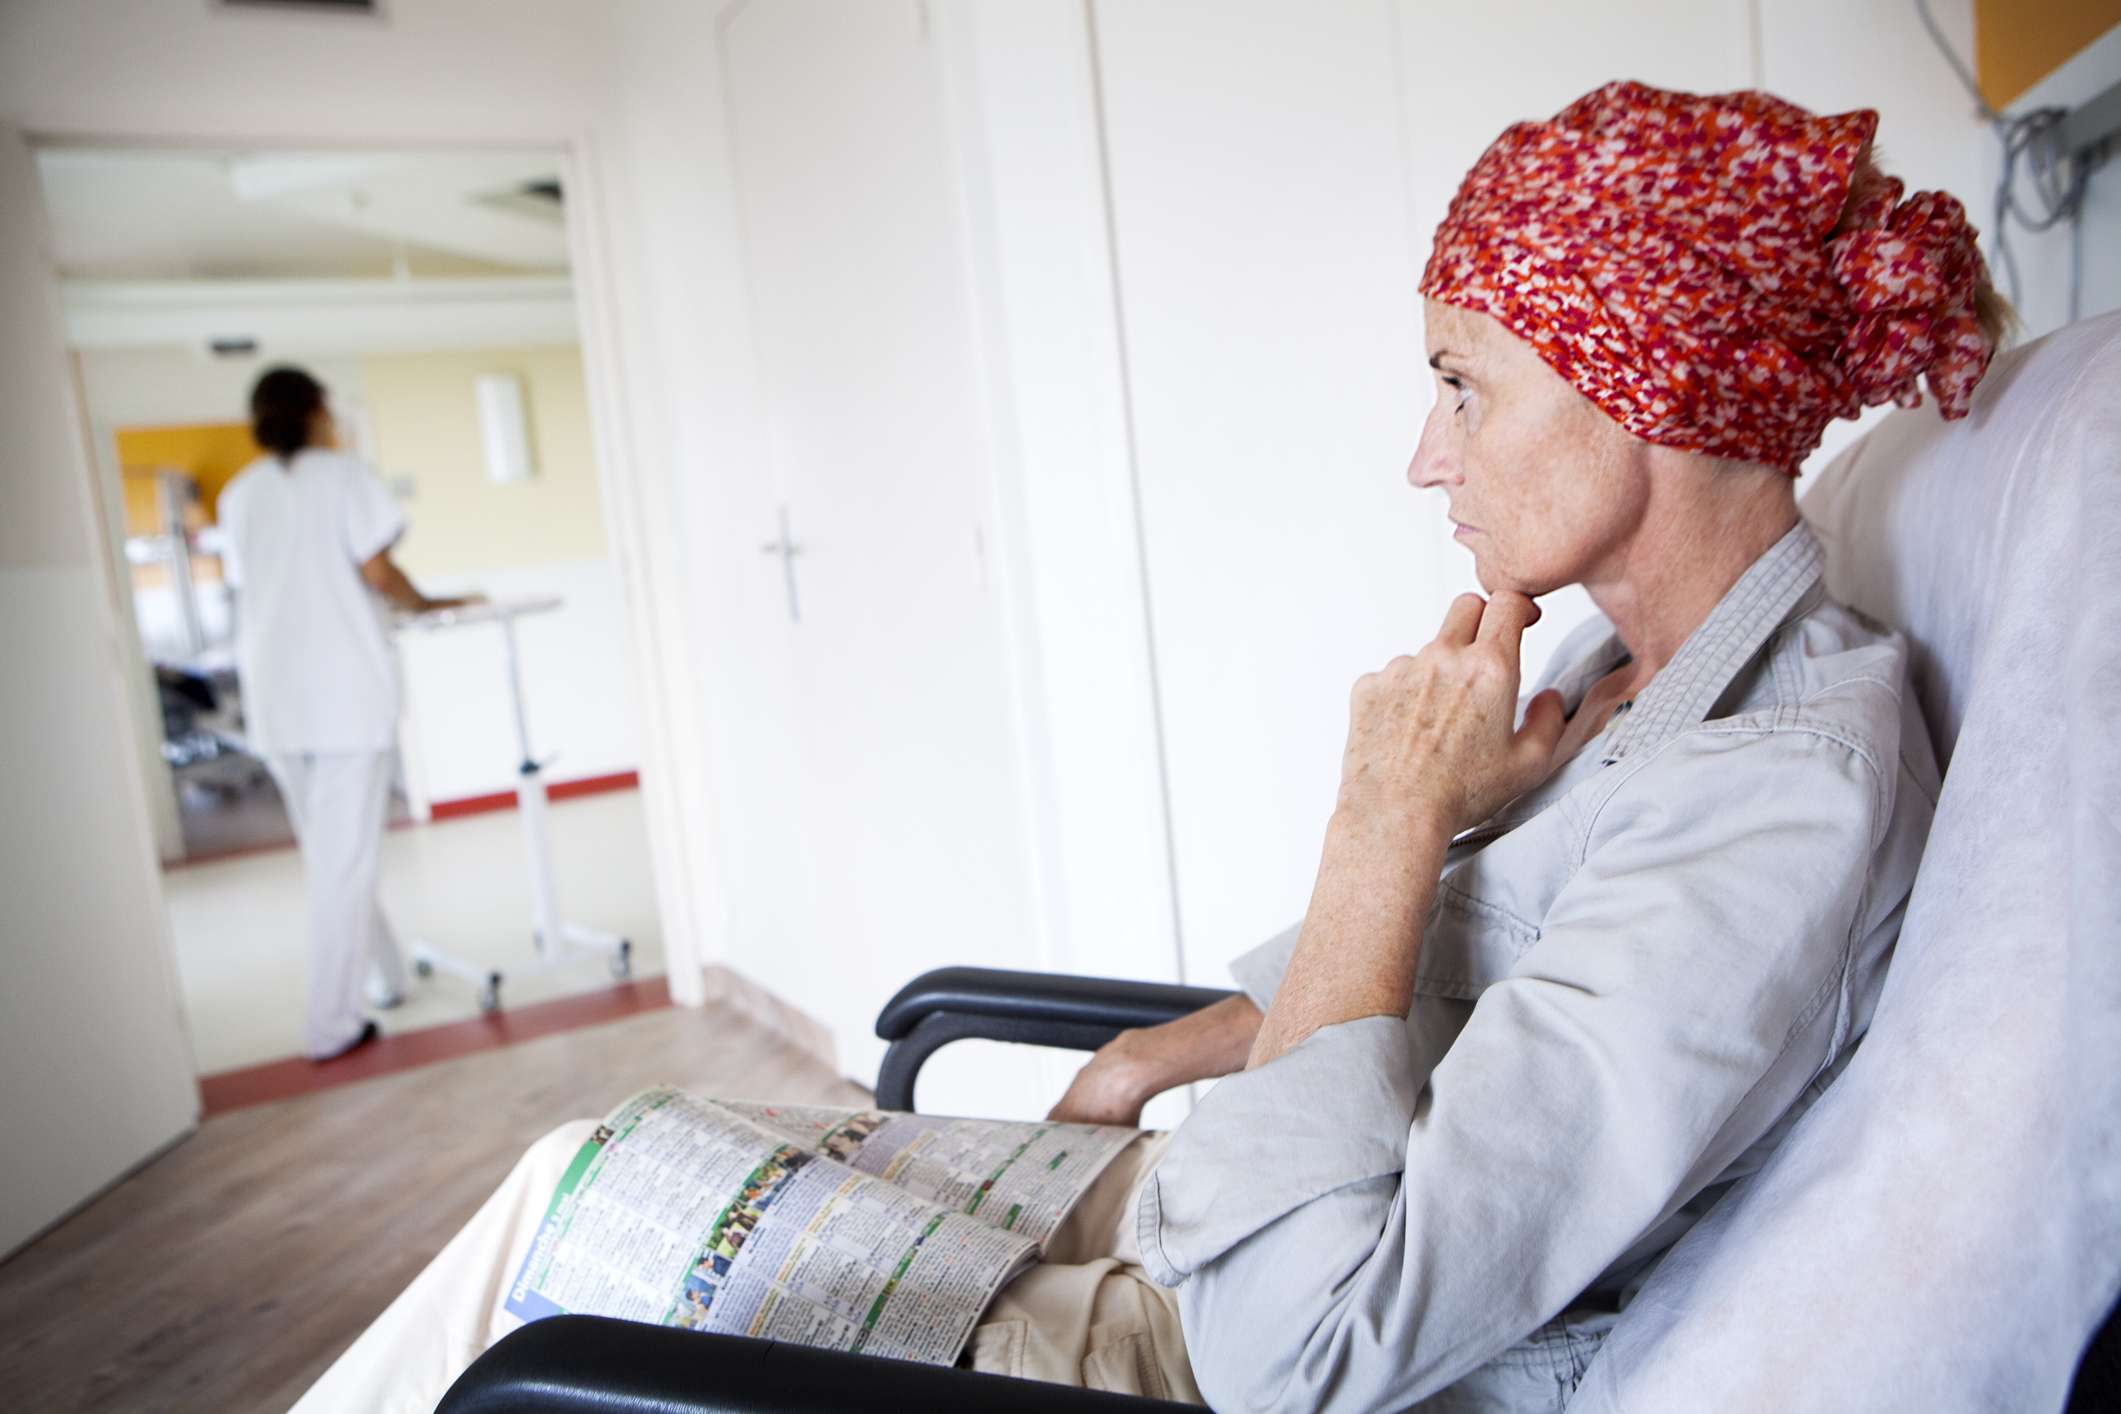 A woman undergoing chemotherapy